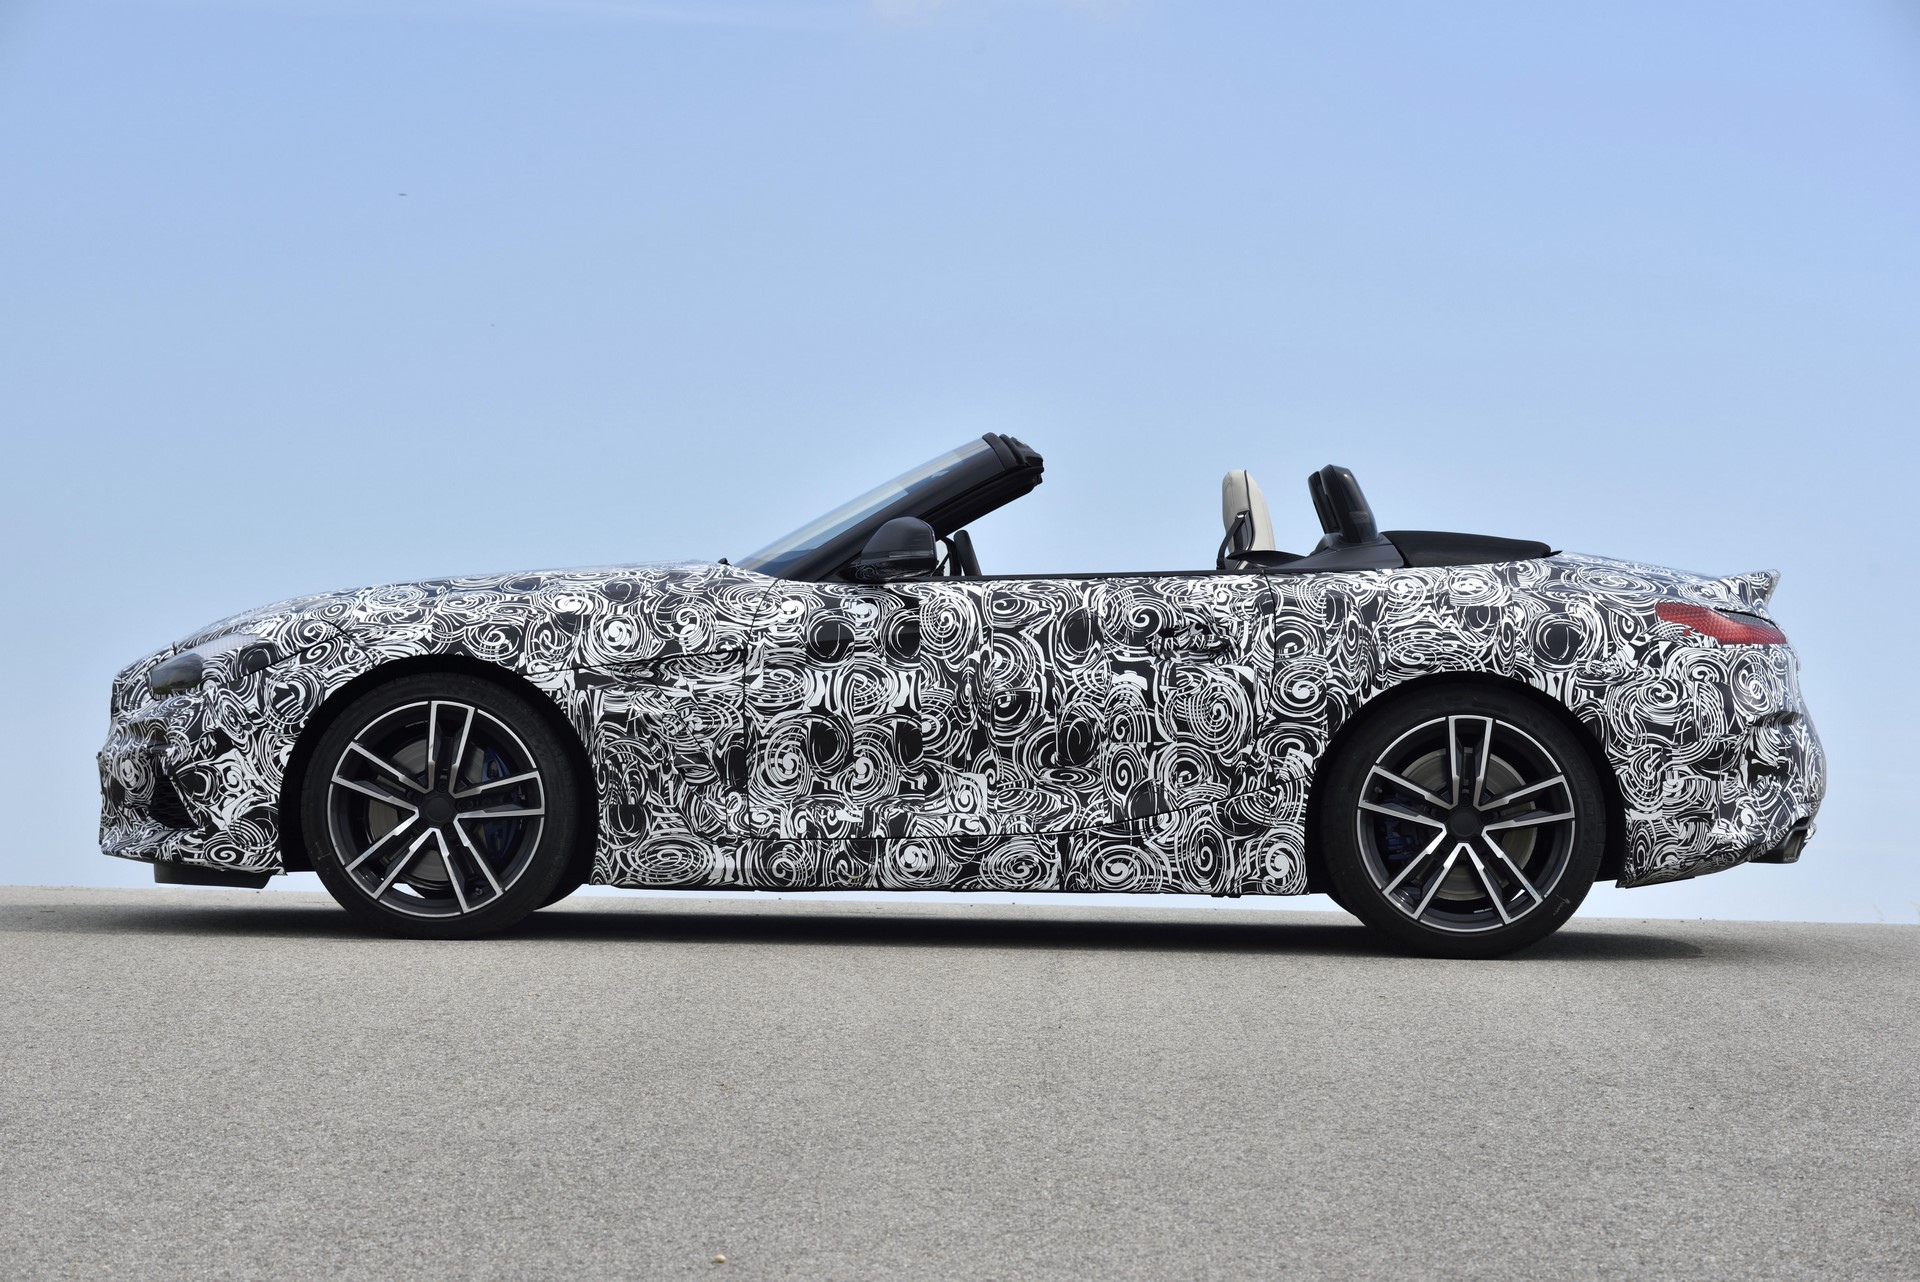 BMW Z4 M40i 2019 official spy photos (35)